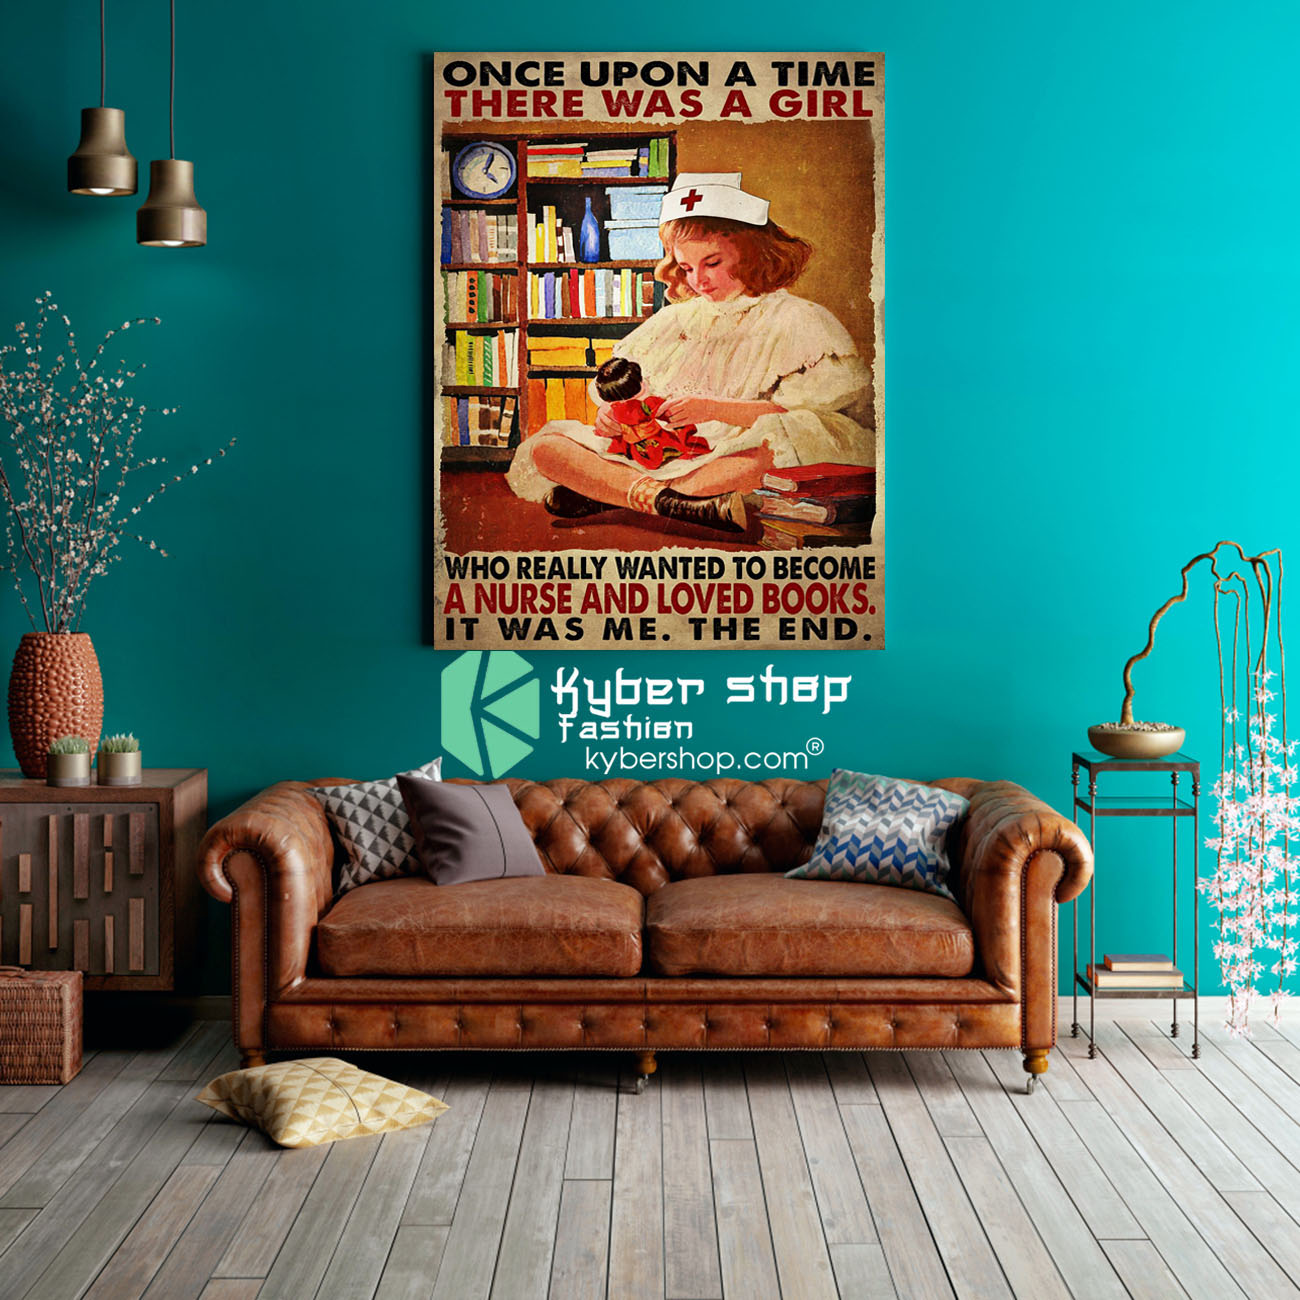 Once upon a time there was a girl who really wanted to become a nurse and loved books poster 3